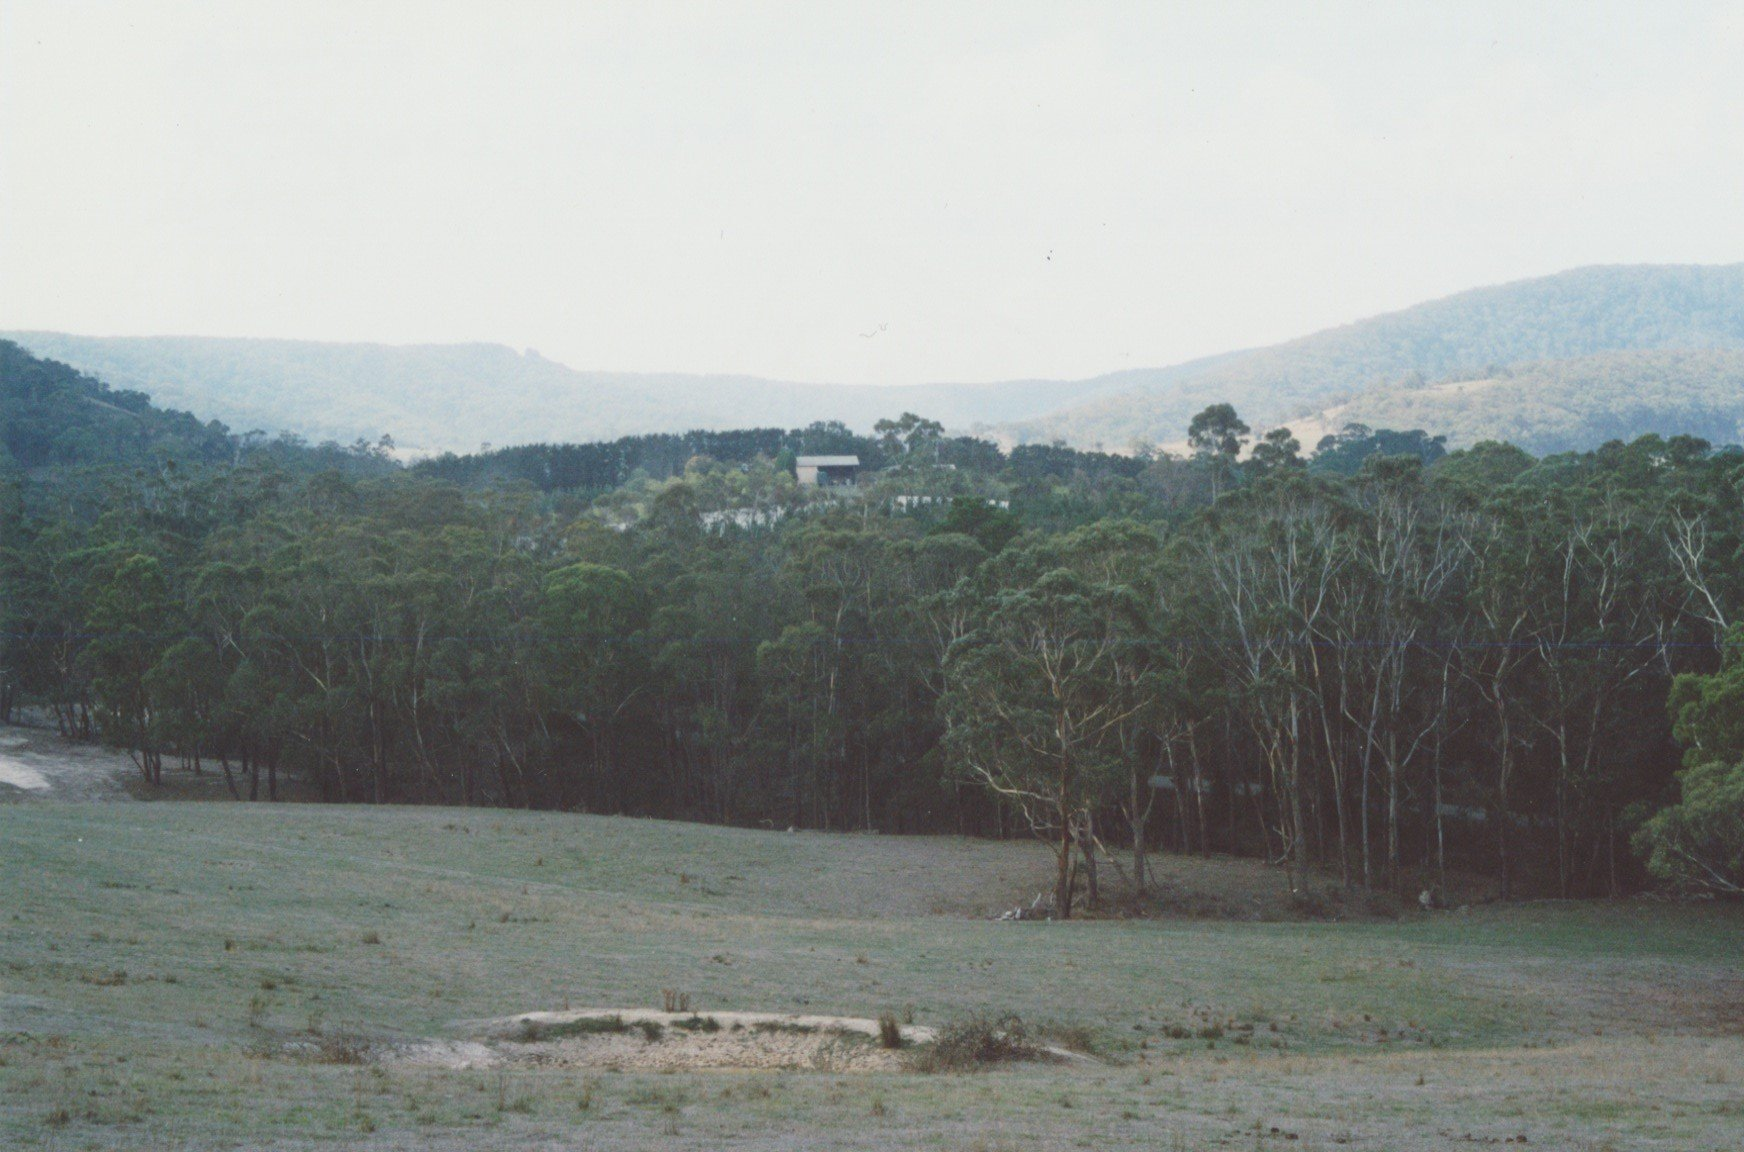 Looking across the former Horne orchards to the headwaters of Arthurs Creek and Pheasants Creek.  Bruce G. Draper, November 2003